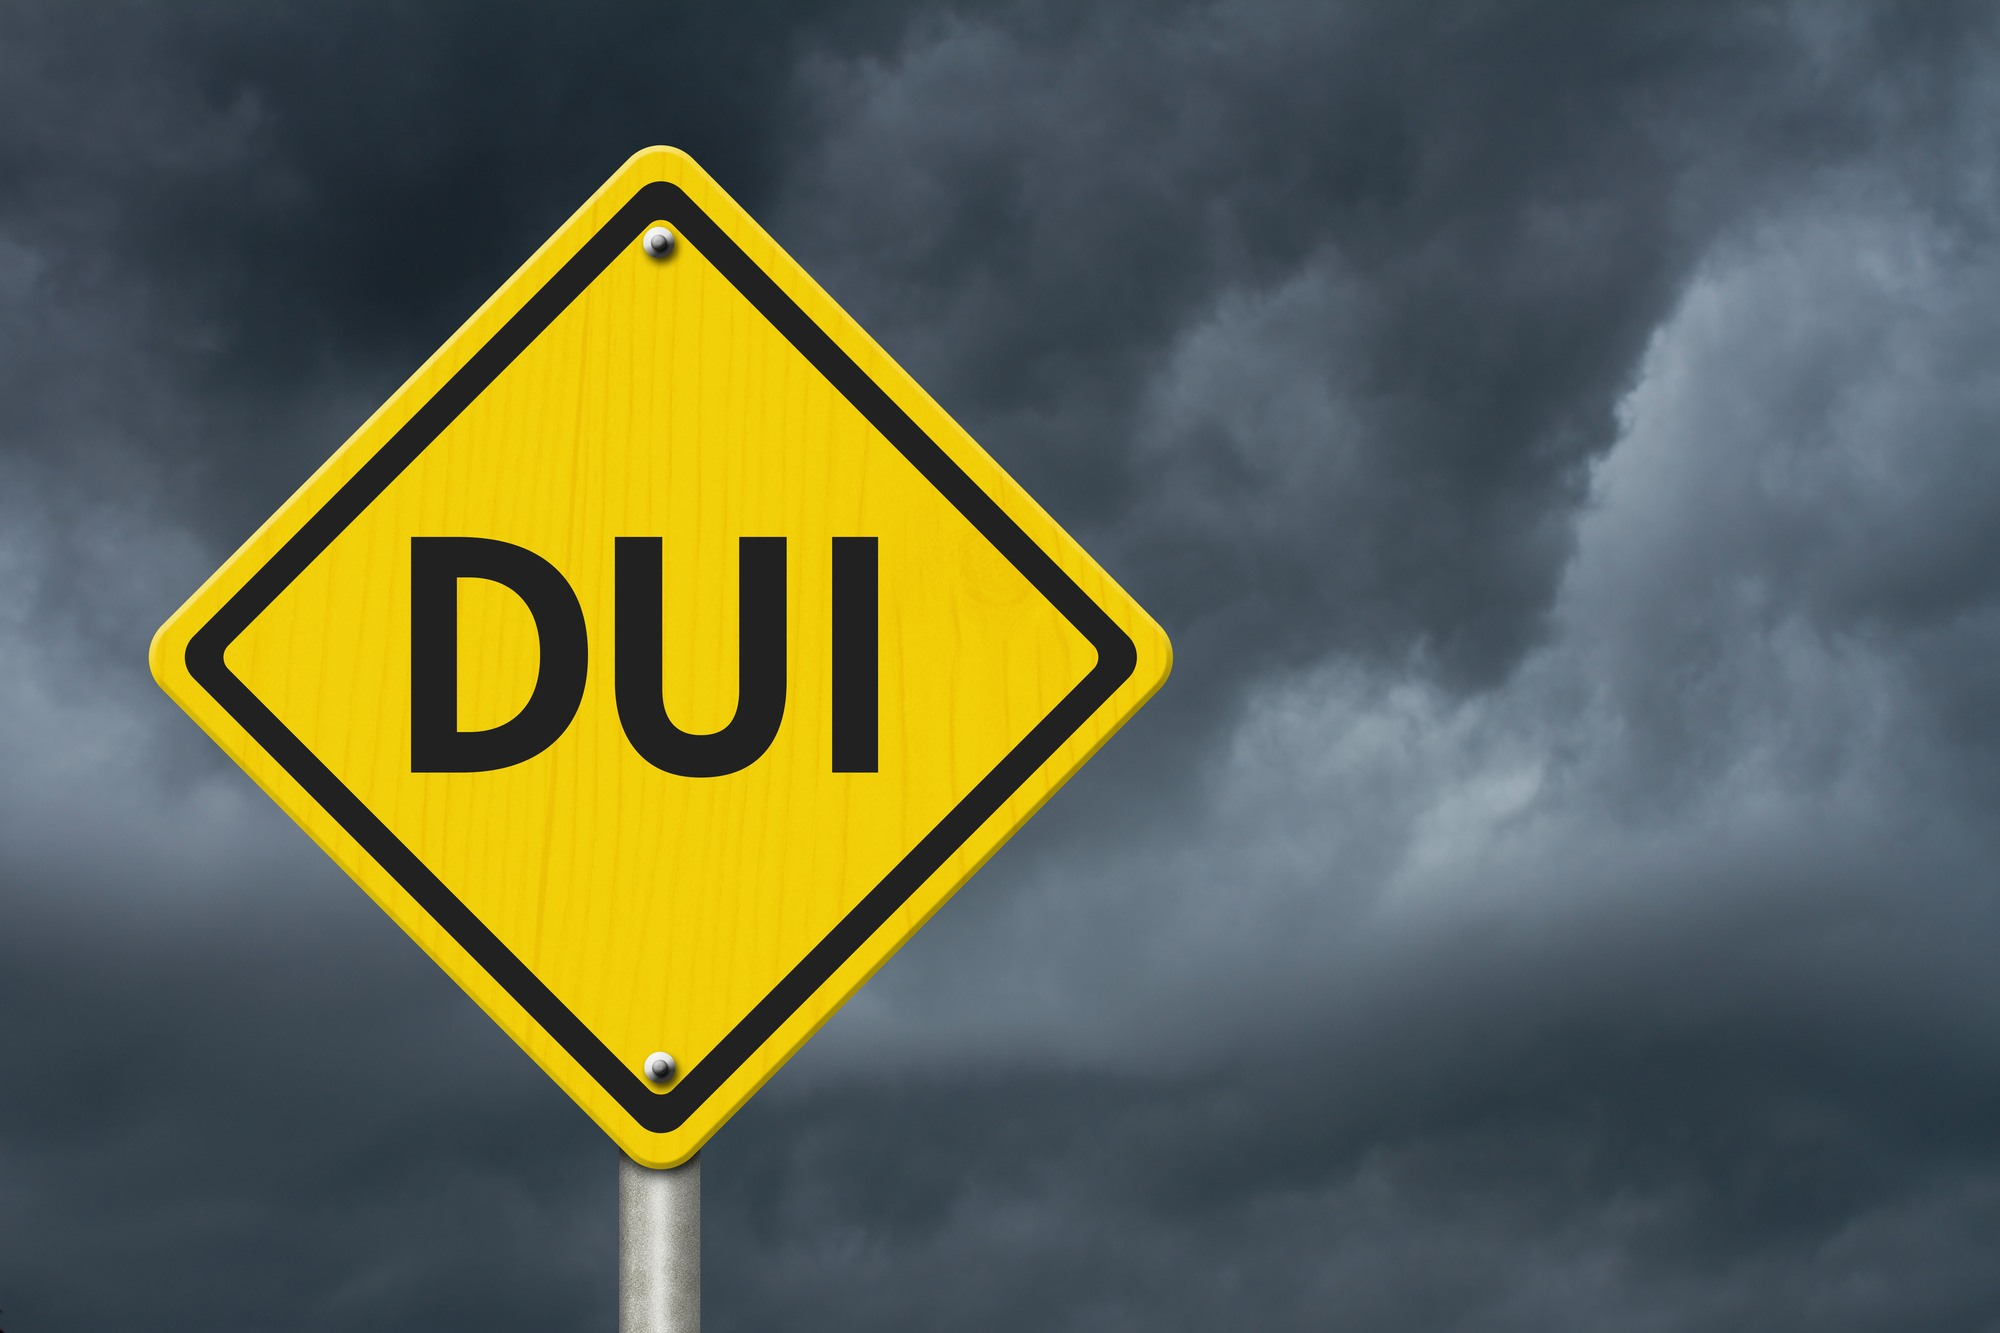 Yellow Warning DUI Highway Road Sign